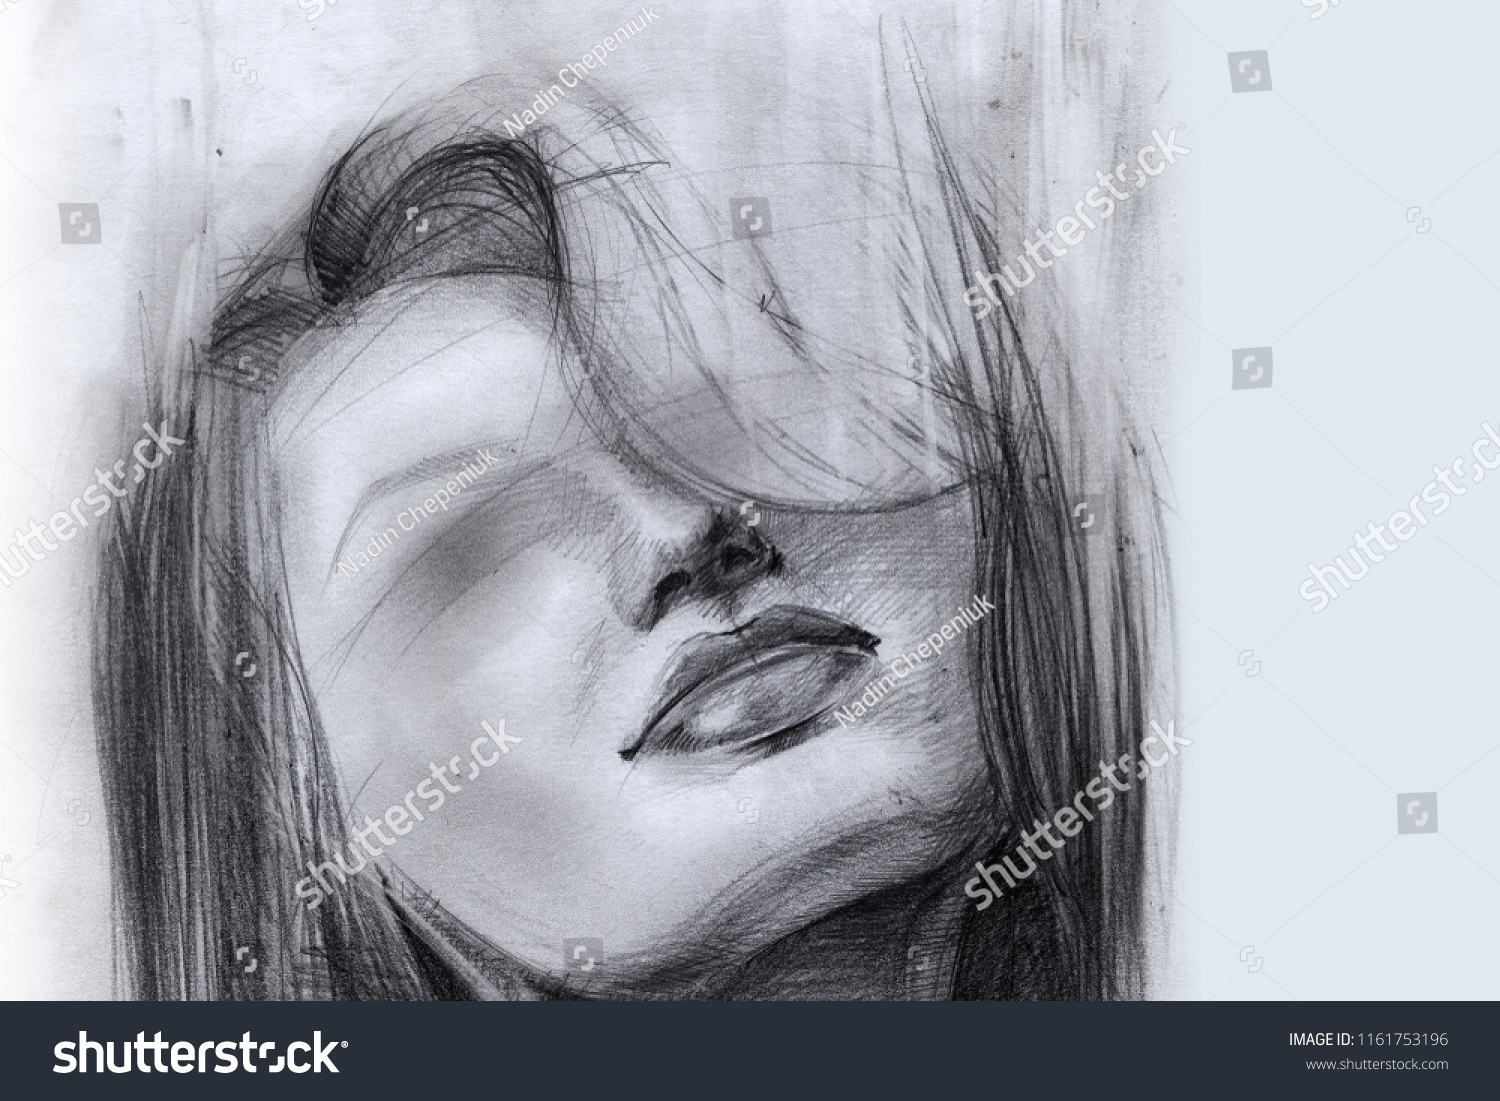 Portrait of a girl face hair blind sketch pencil drawing